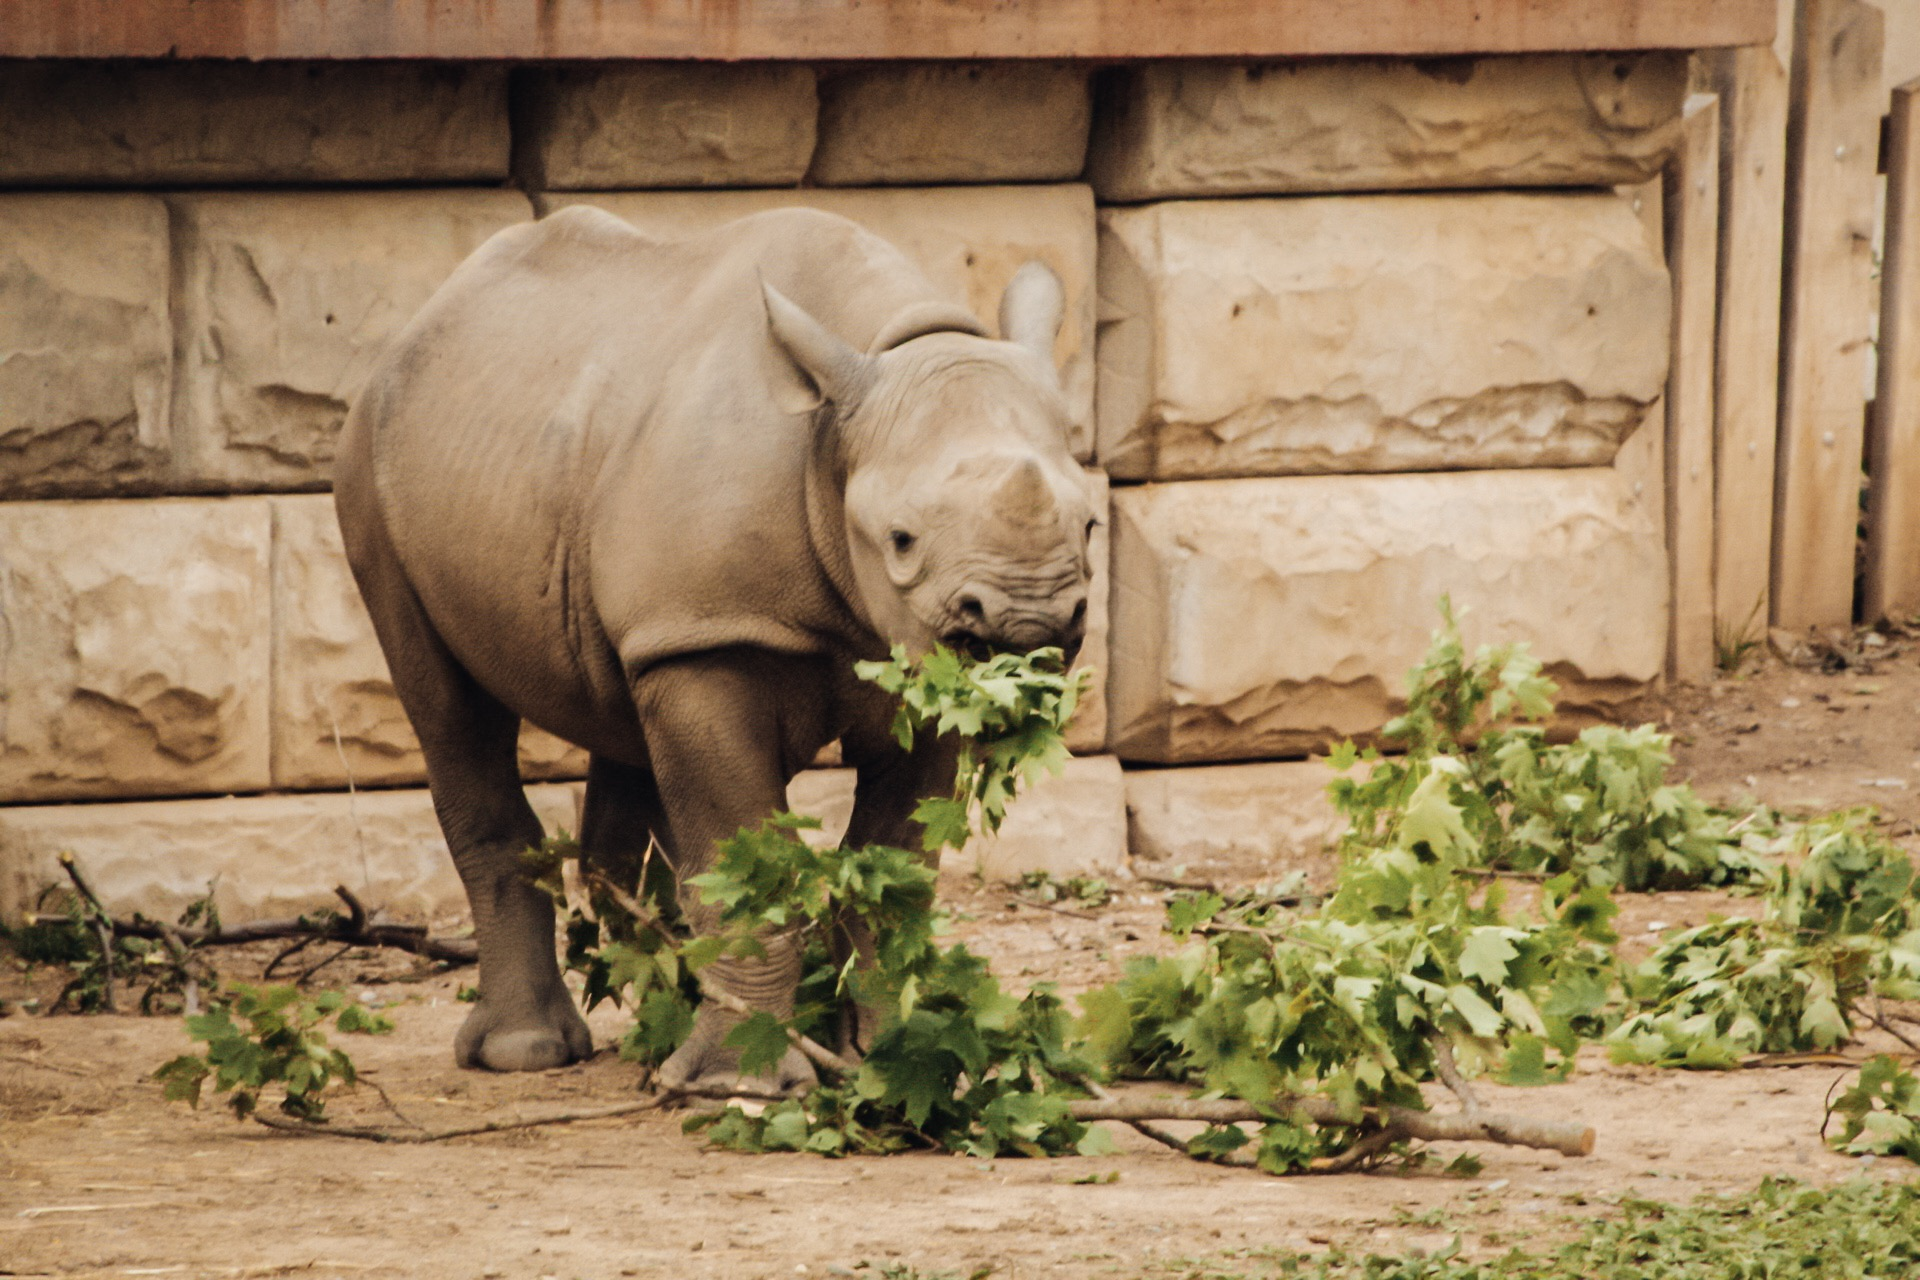 Baby rhino Nia at the Cleveland Zoo! Rhinos were the only animals we didn't  see up close on safari  - turns out that unlike lions, they really don't like humans.